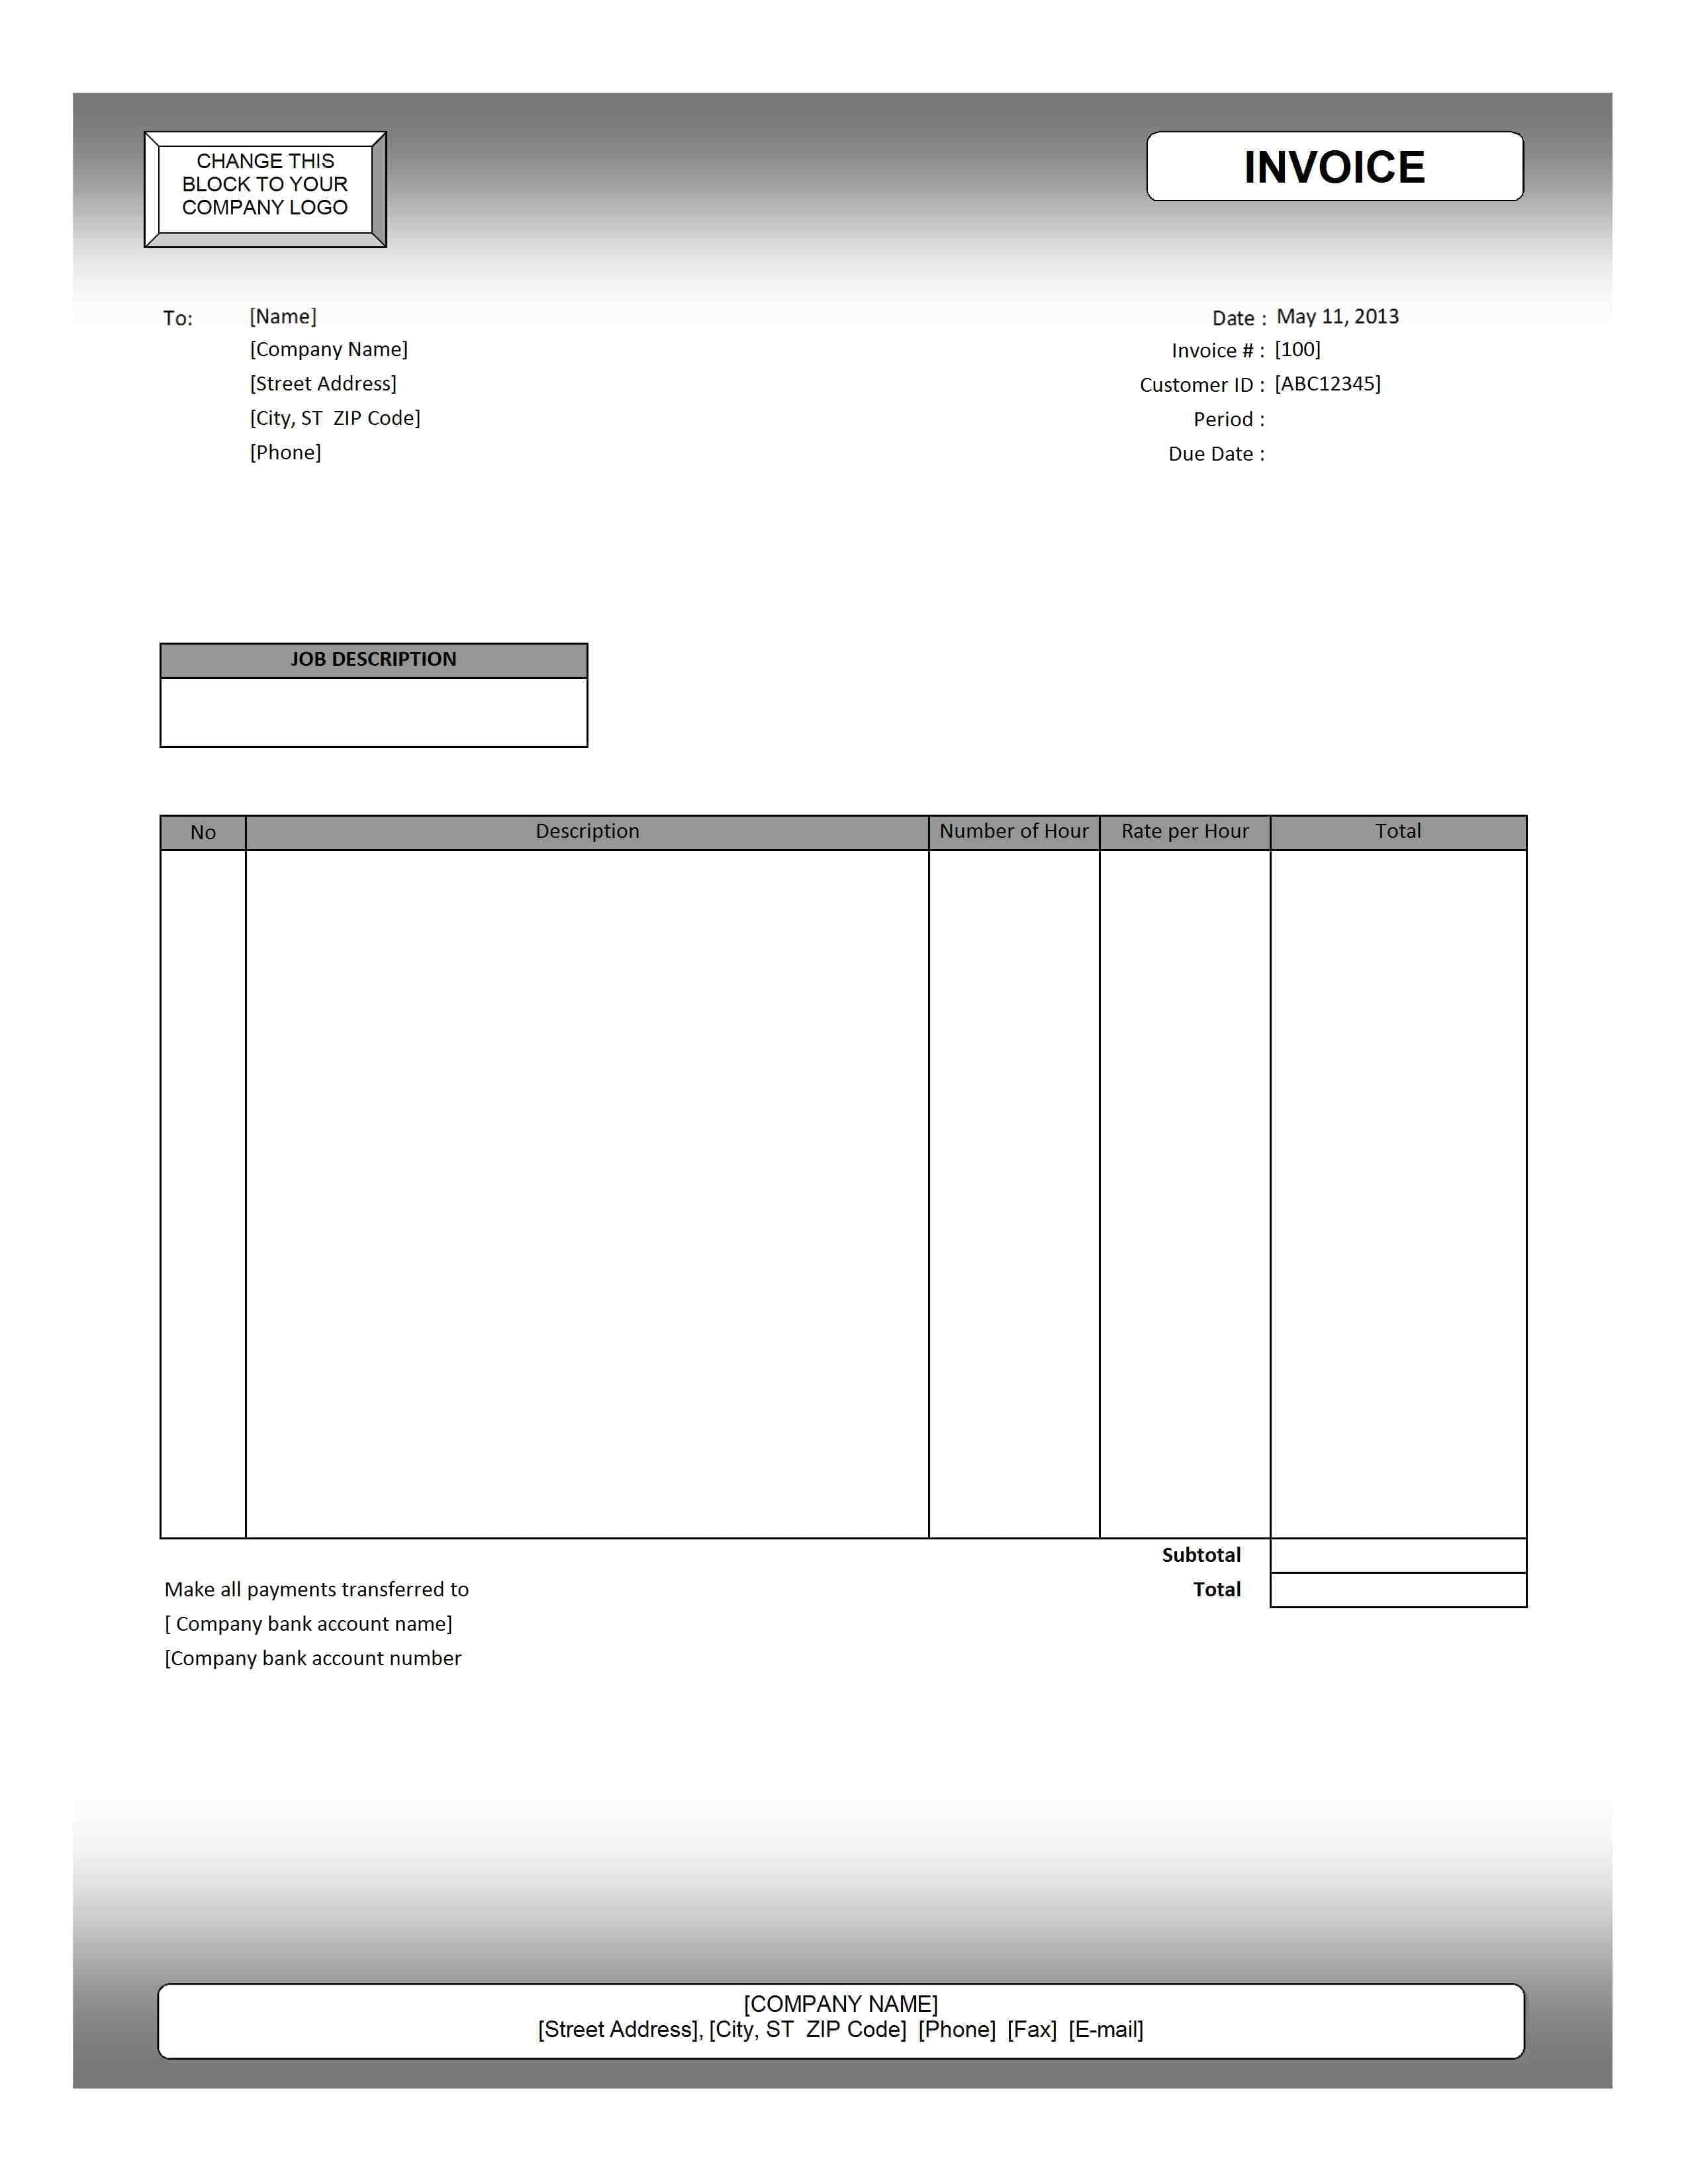 Invoice Example Invoice Template Google Docs Spreadsheet Templates for Busines Spreadsheet Templates for Busines Sample Invoice Template Word Doc